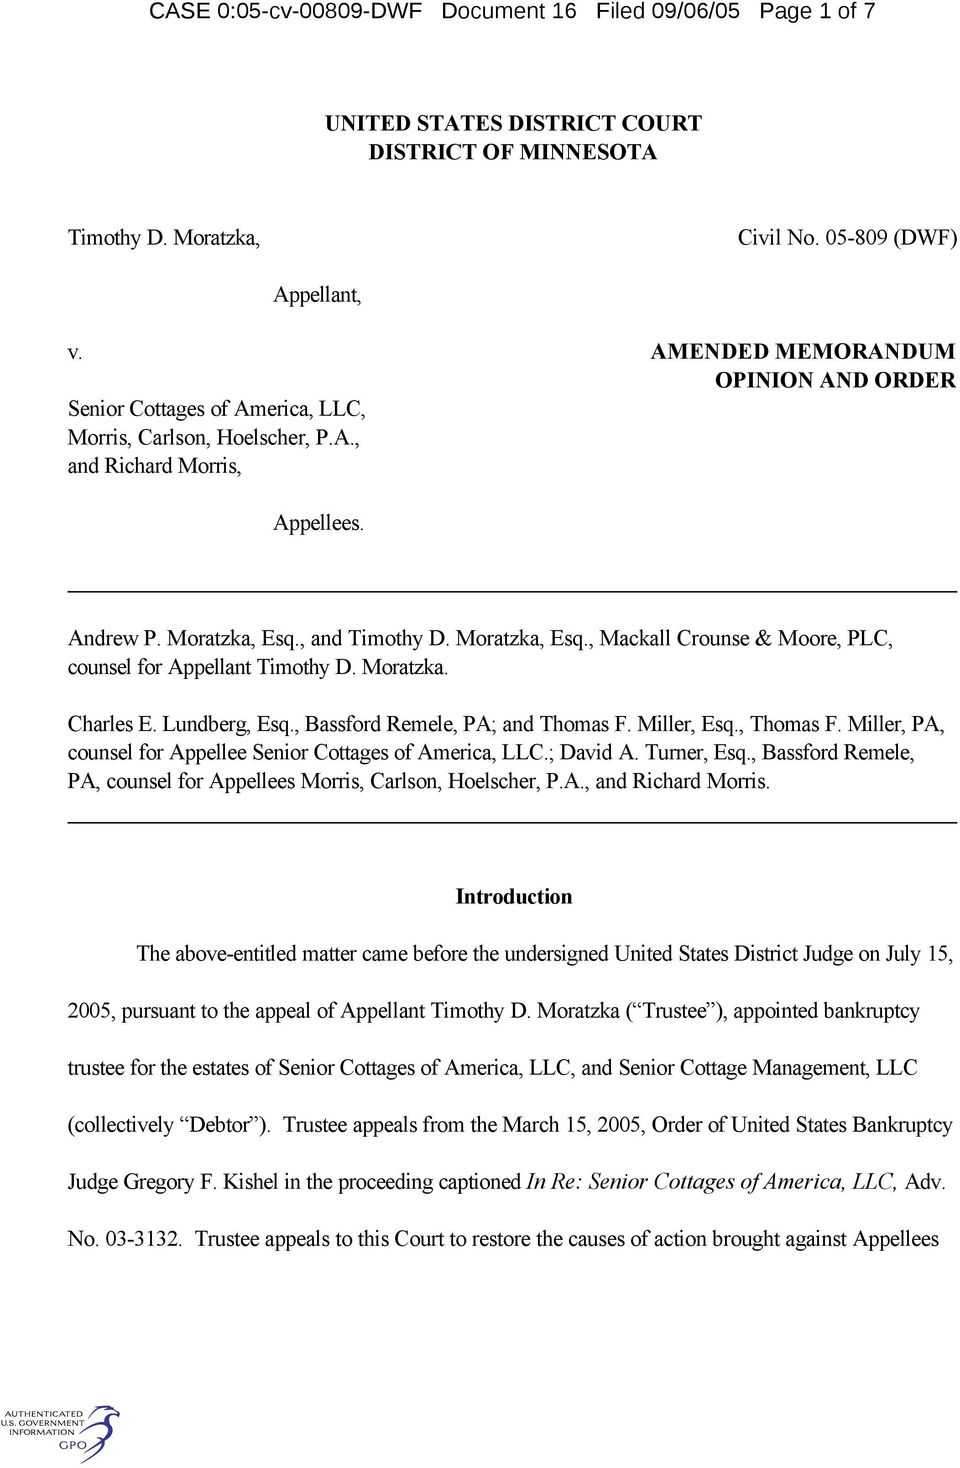 , and Timothy D. Moratzka, Esq., Mackall Crounse & Moore, PLC, counsel for Appellant Timothy D. Moratzka. Charles E. Lundberg, Esq., Bassford Remele, PA; and Thomas F. Miller, Esq., Thomas F.